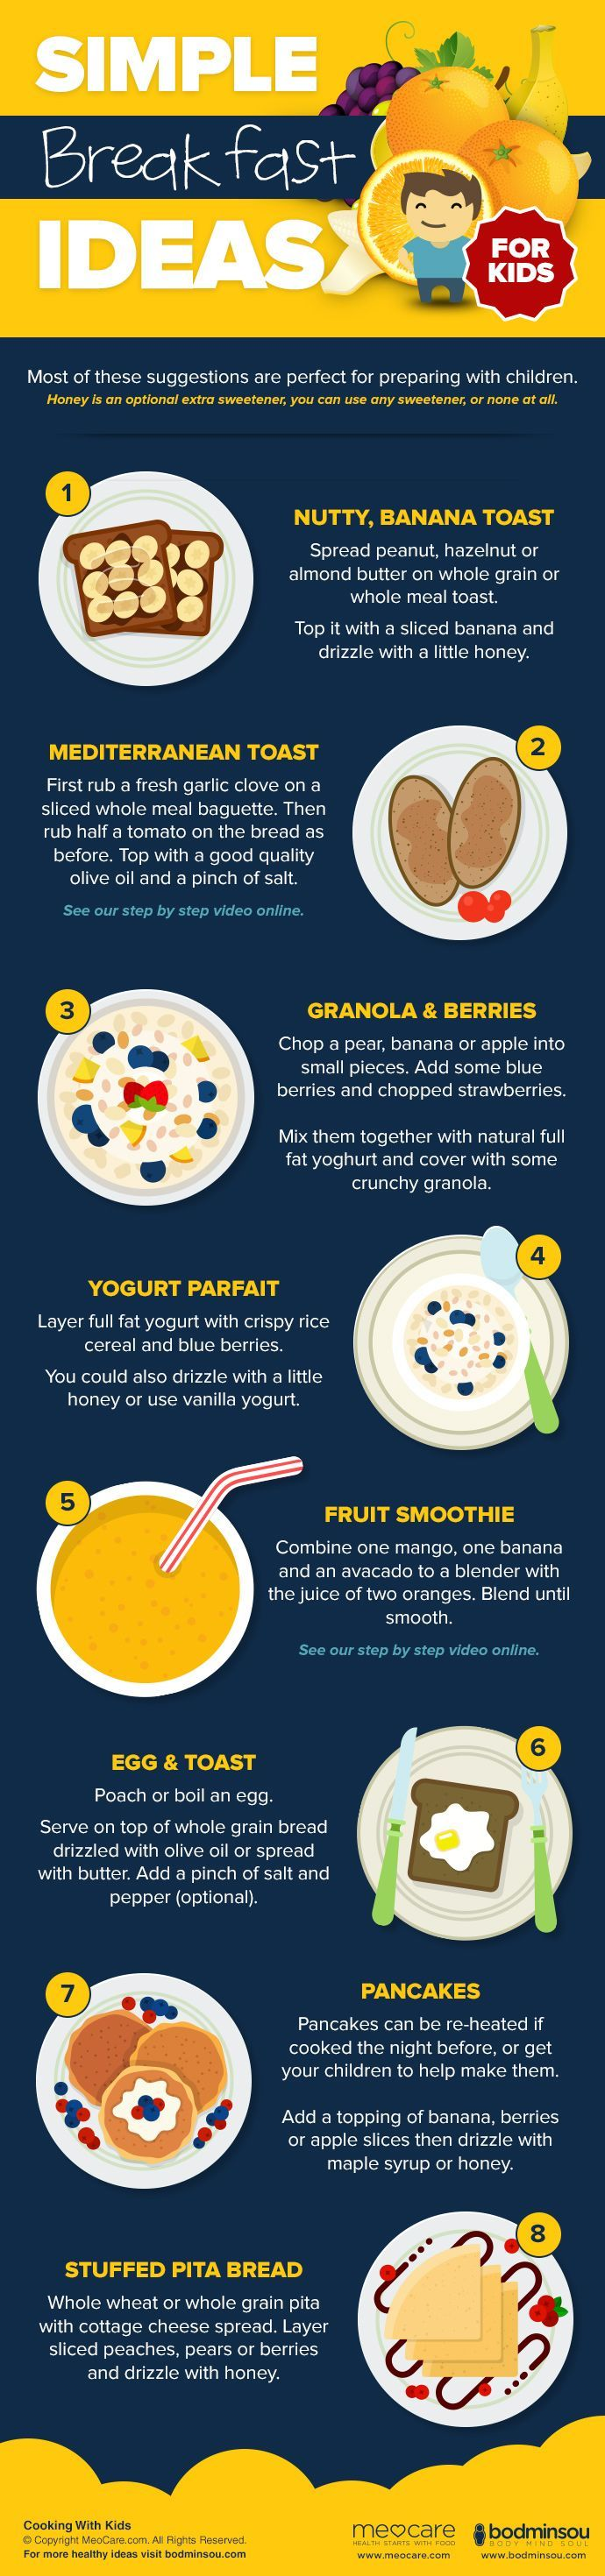 Healthy breakfast ideas. Nutty banana toast, mediterranean toast, granola & berries, yogurt parfait, fruit smoothie, egg & toast, pancakes, stuffed pitta bread and many more-bodminsou- healthy eating- healthy living